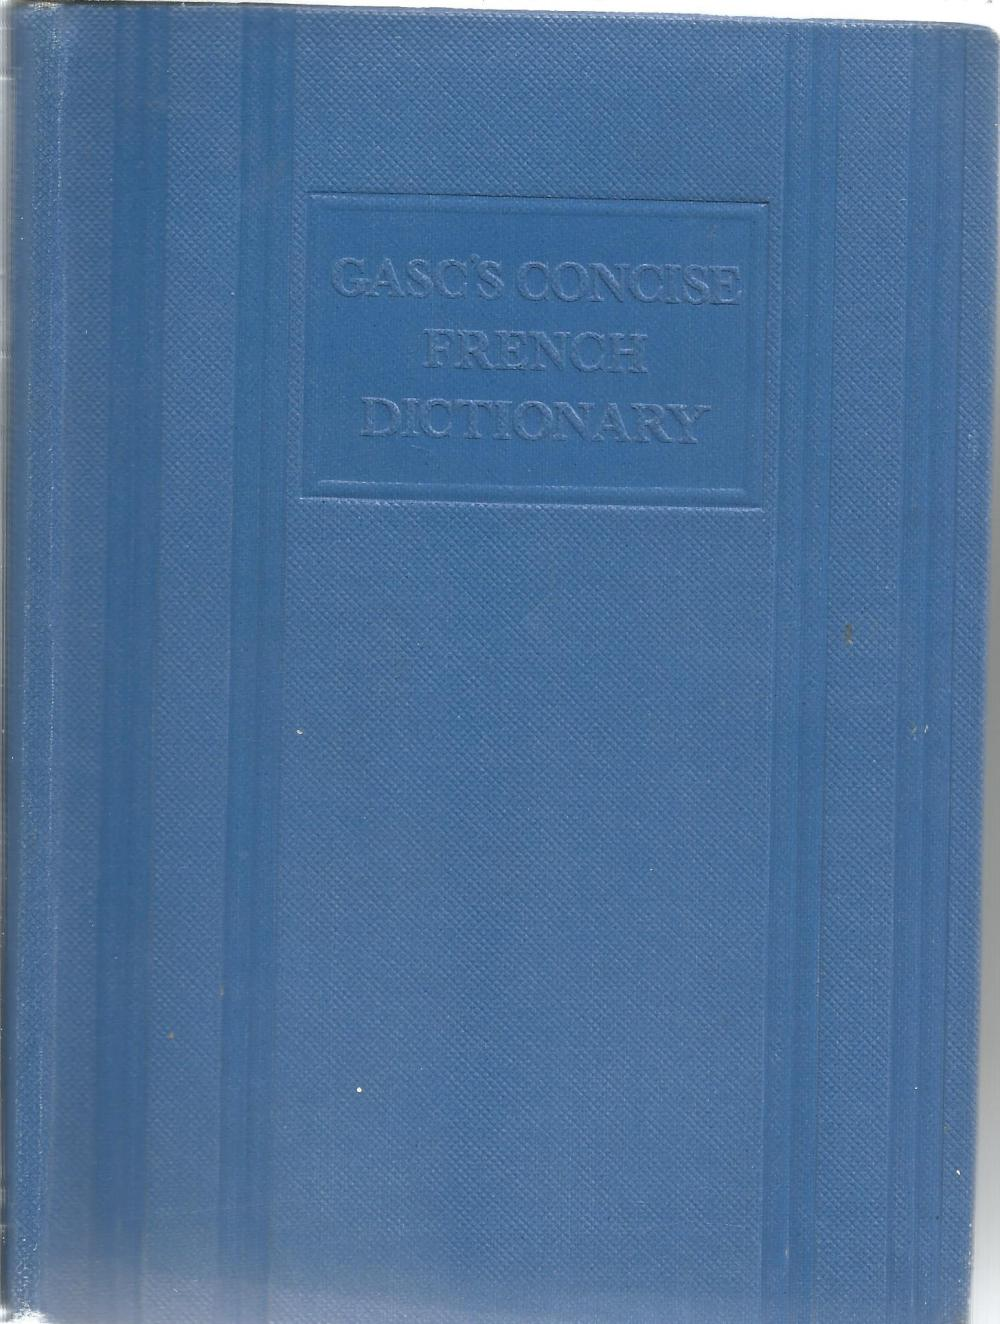 Gasc's Concise Dictionary of the French and English Languages. Unsigned hardback book with no dust